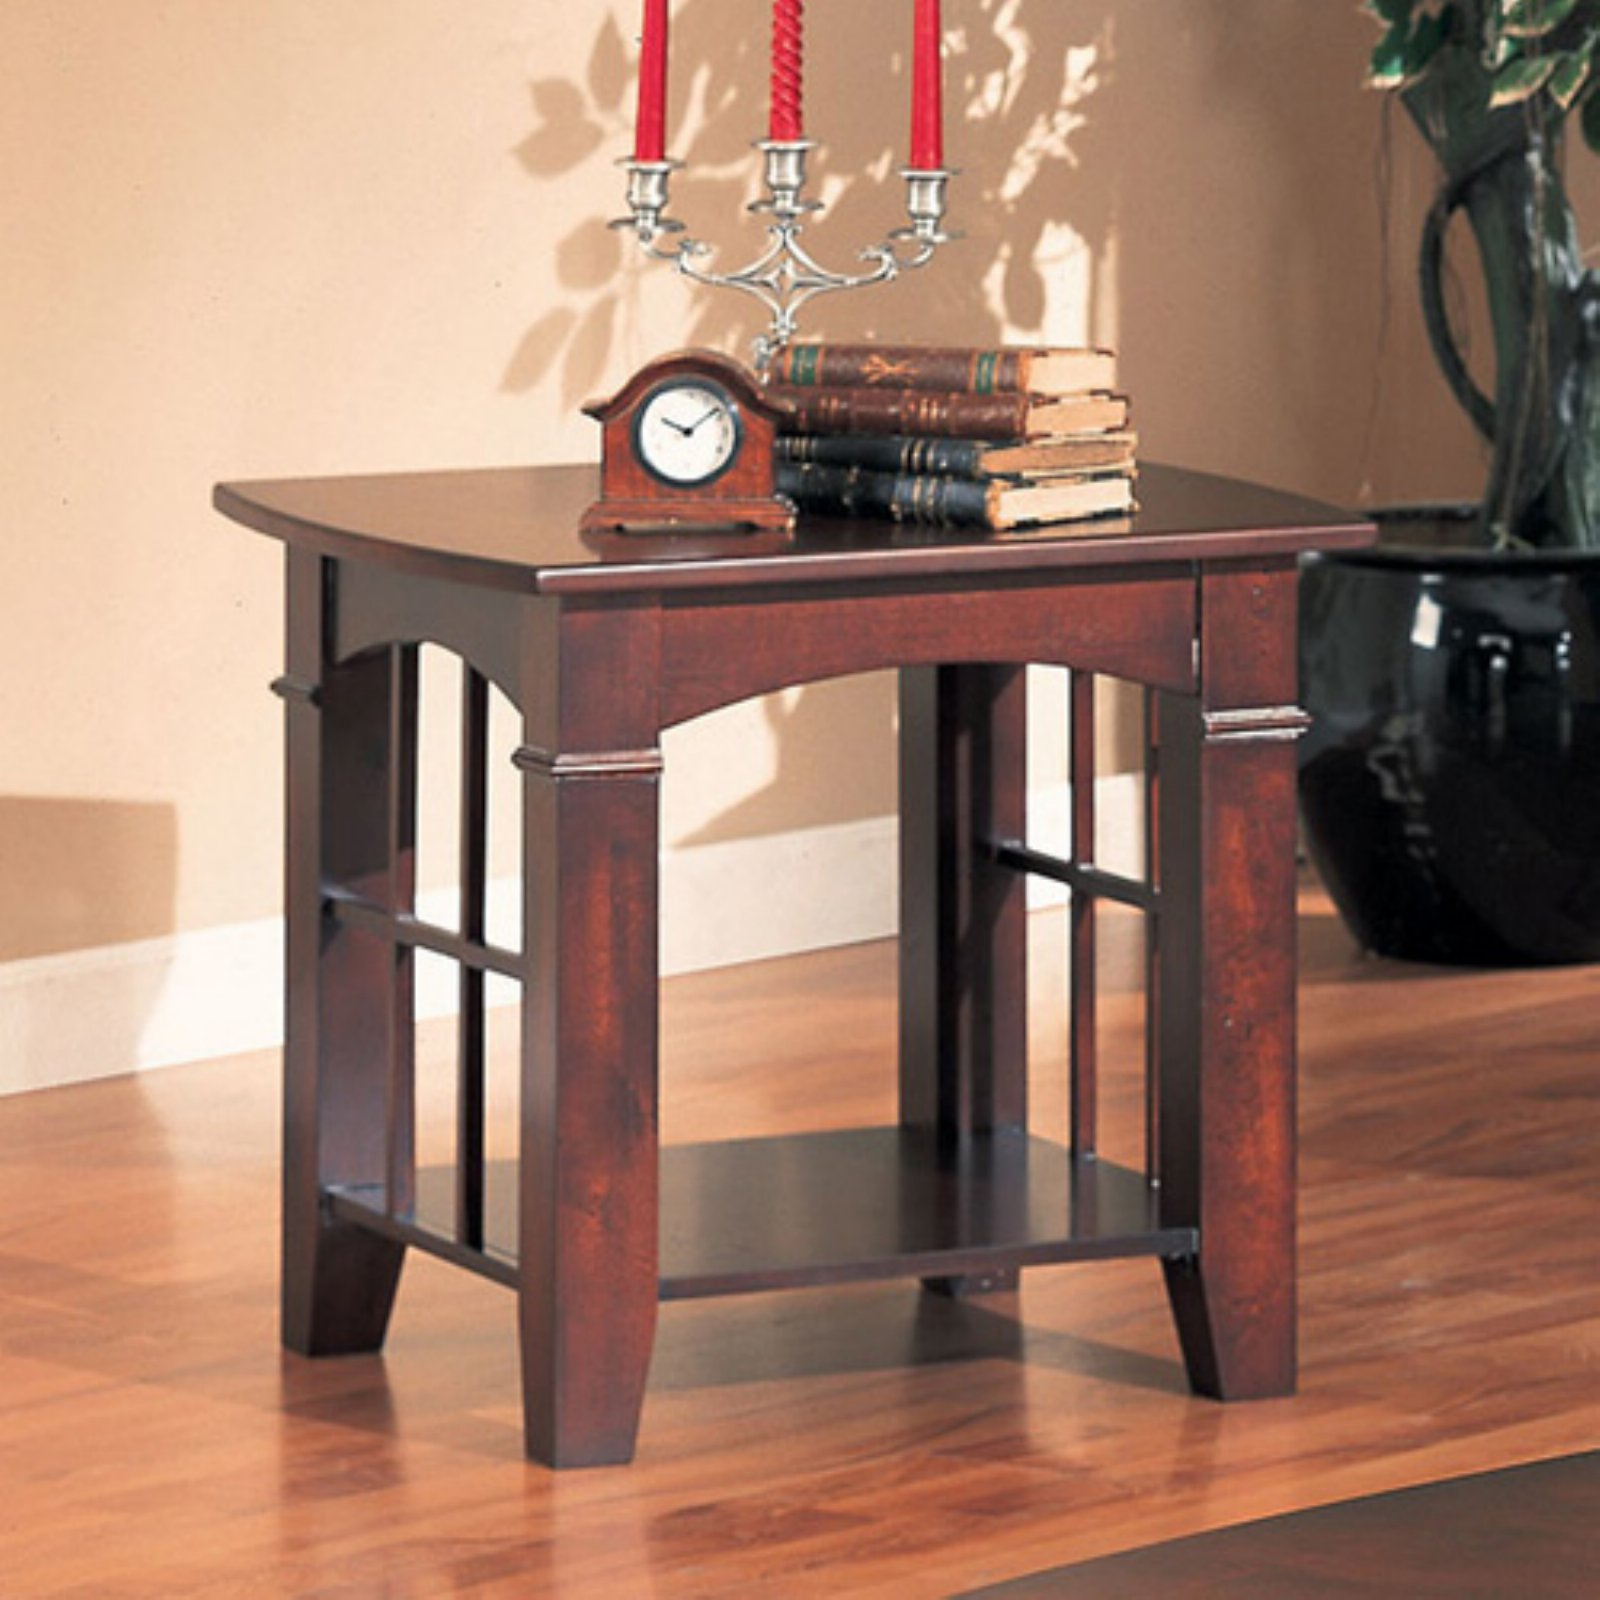 coaster traditional end table cherry finish glass coffee living room distressed oak diy wood with pipe legs stanley dining stickley furniture jobs modern contemporary square